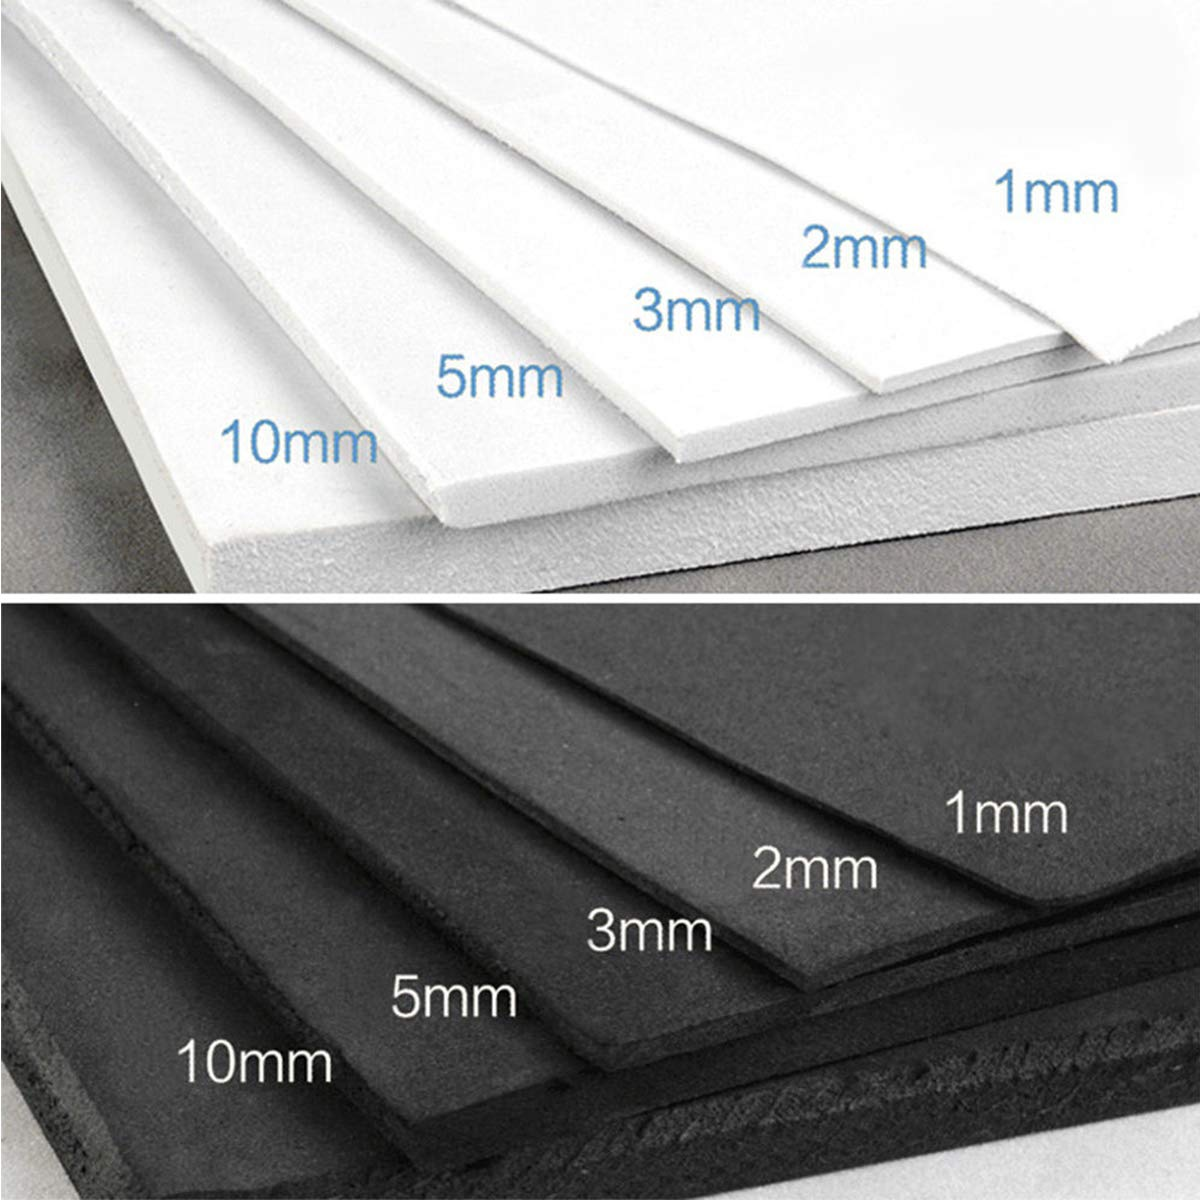 EVA Foam Sheets for Kids Craft Cosplay Model Handmade DIY 35x50cm 35x100cm Thickness 1mm//2mm//3mm//5mm//10mm